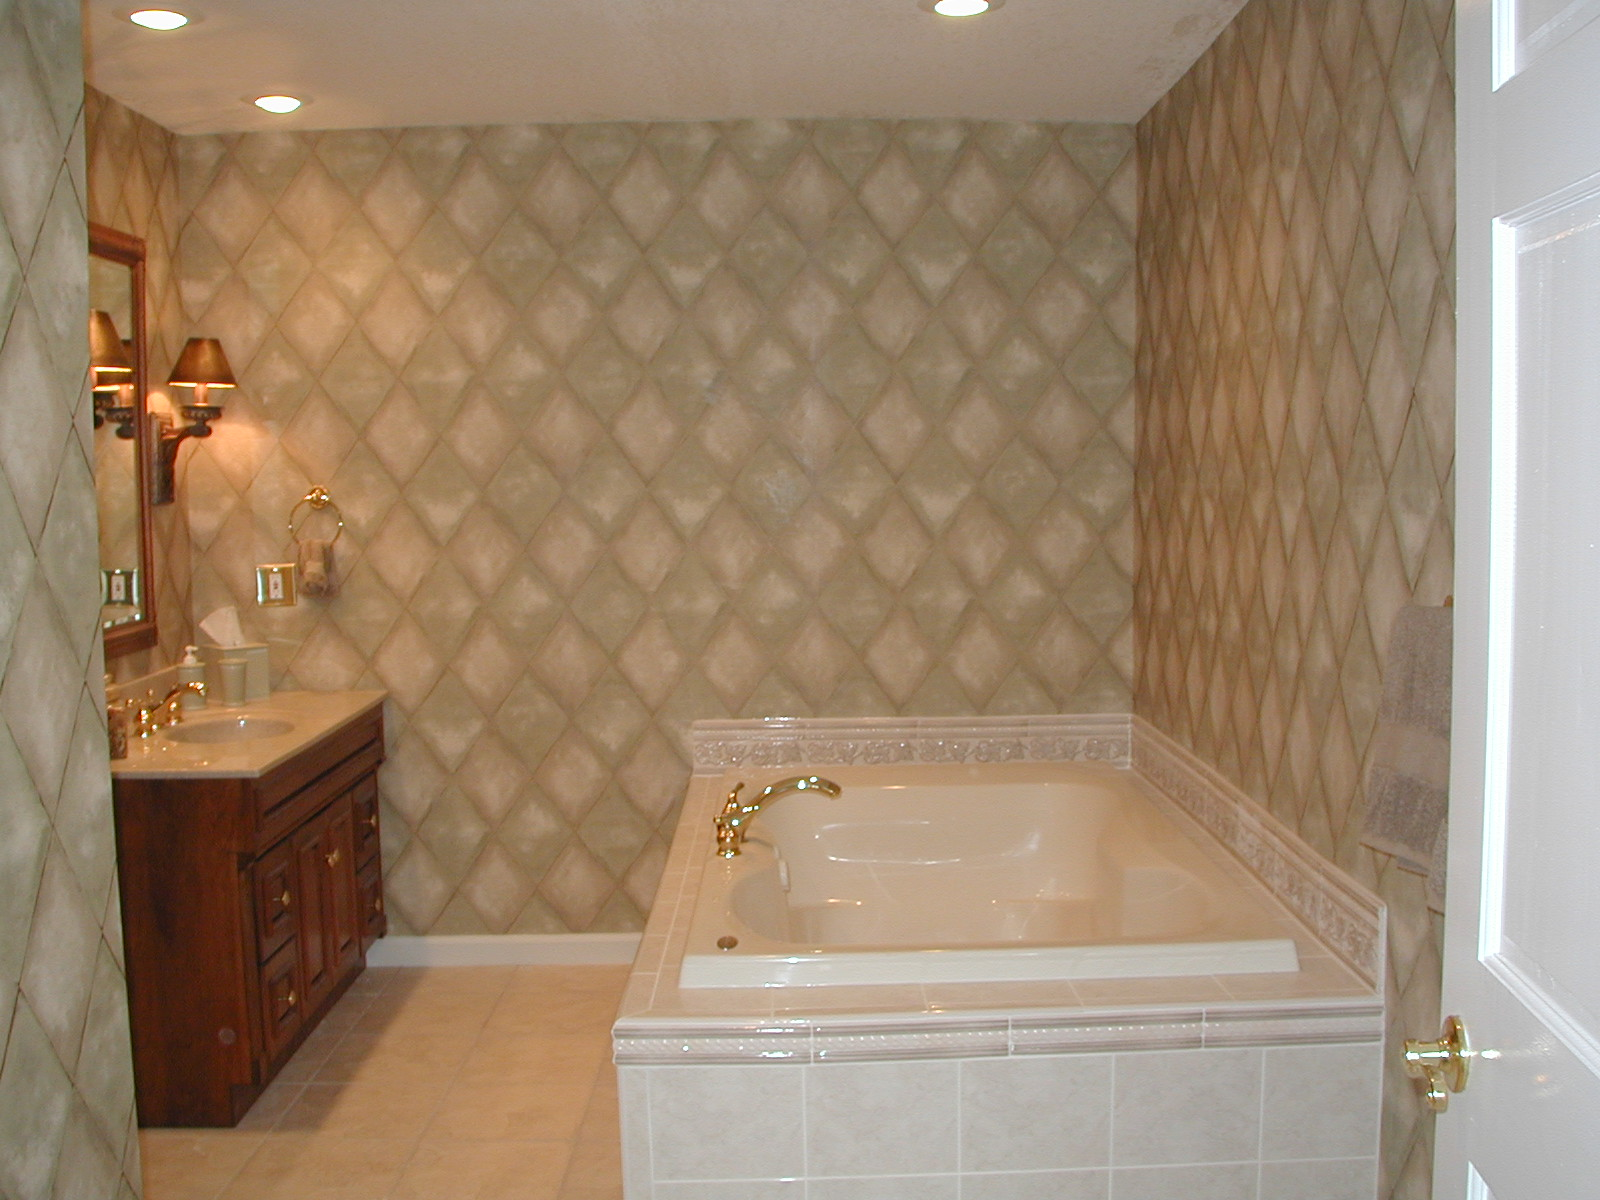 30 cool ideas and pictures custom shower tile designs for Bathtub and shower designs